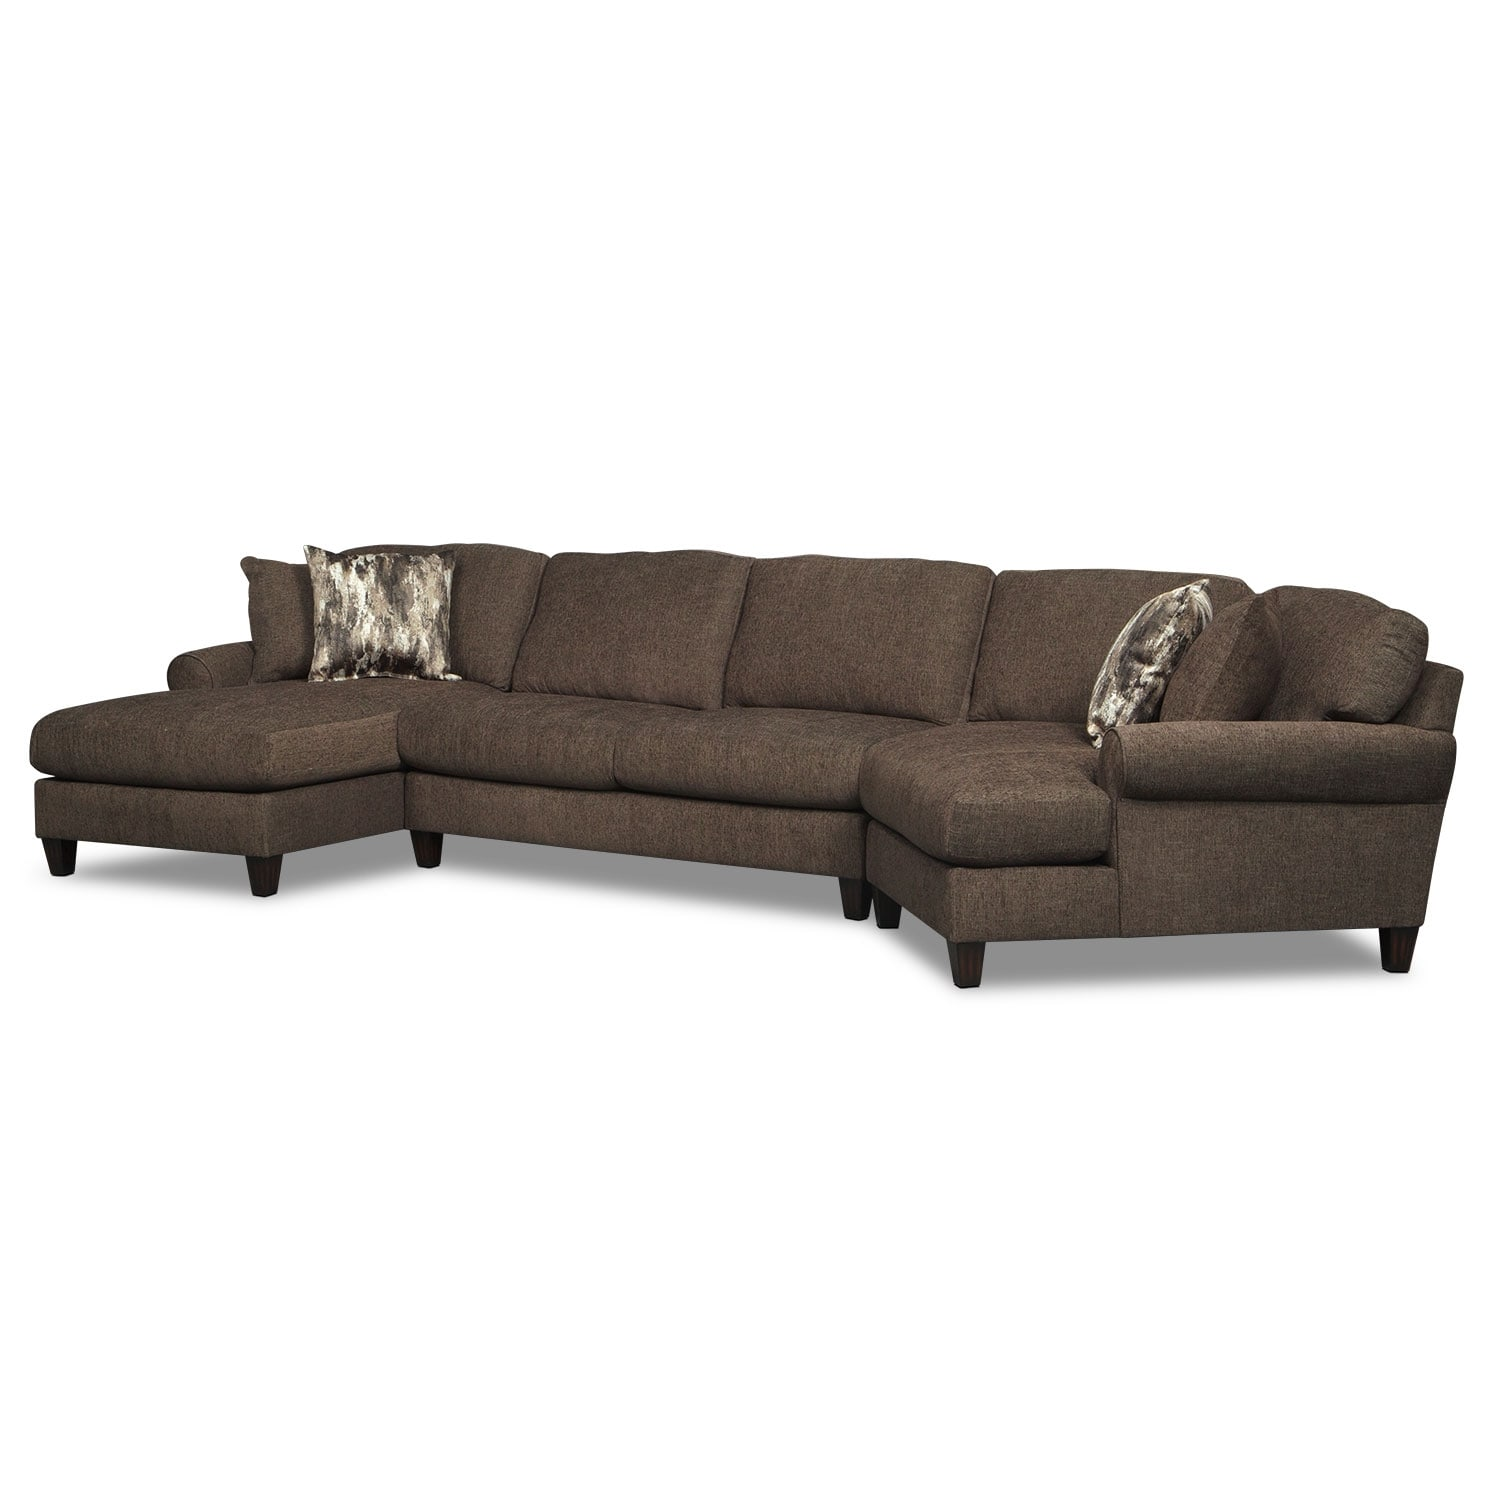 Image Result For Piece Sectional Sofa With Recliner